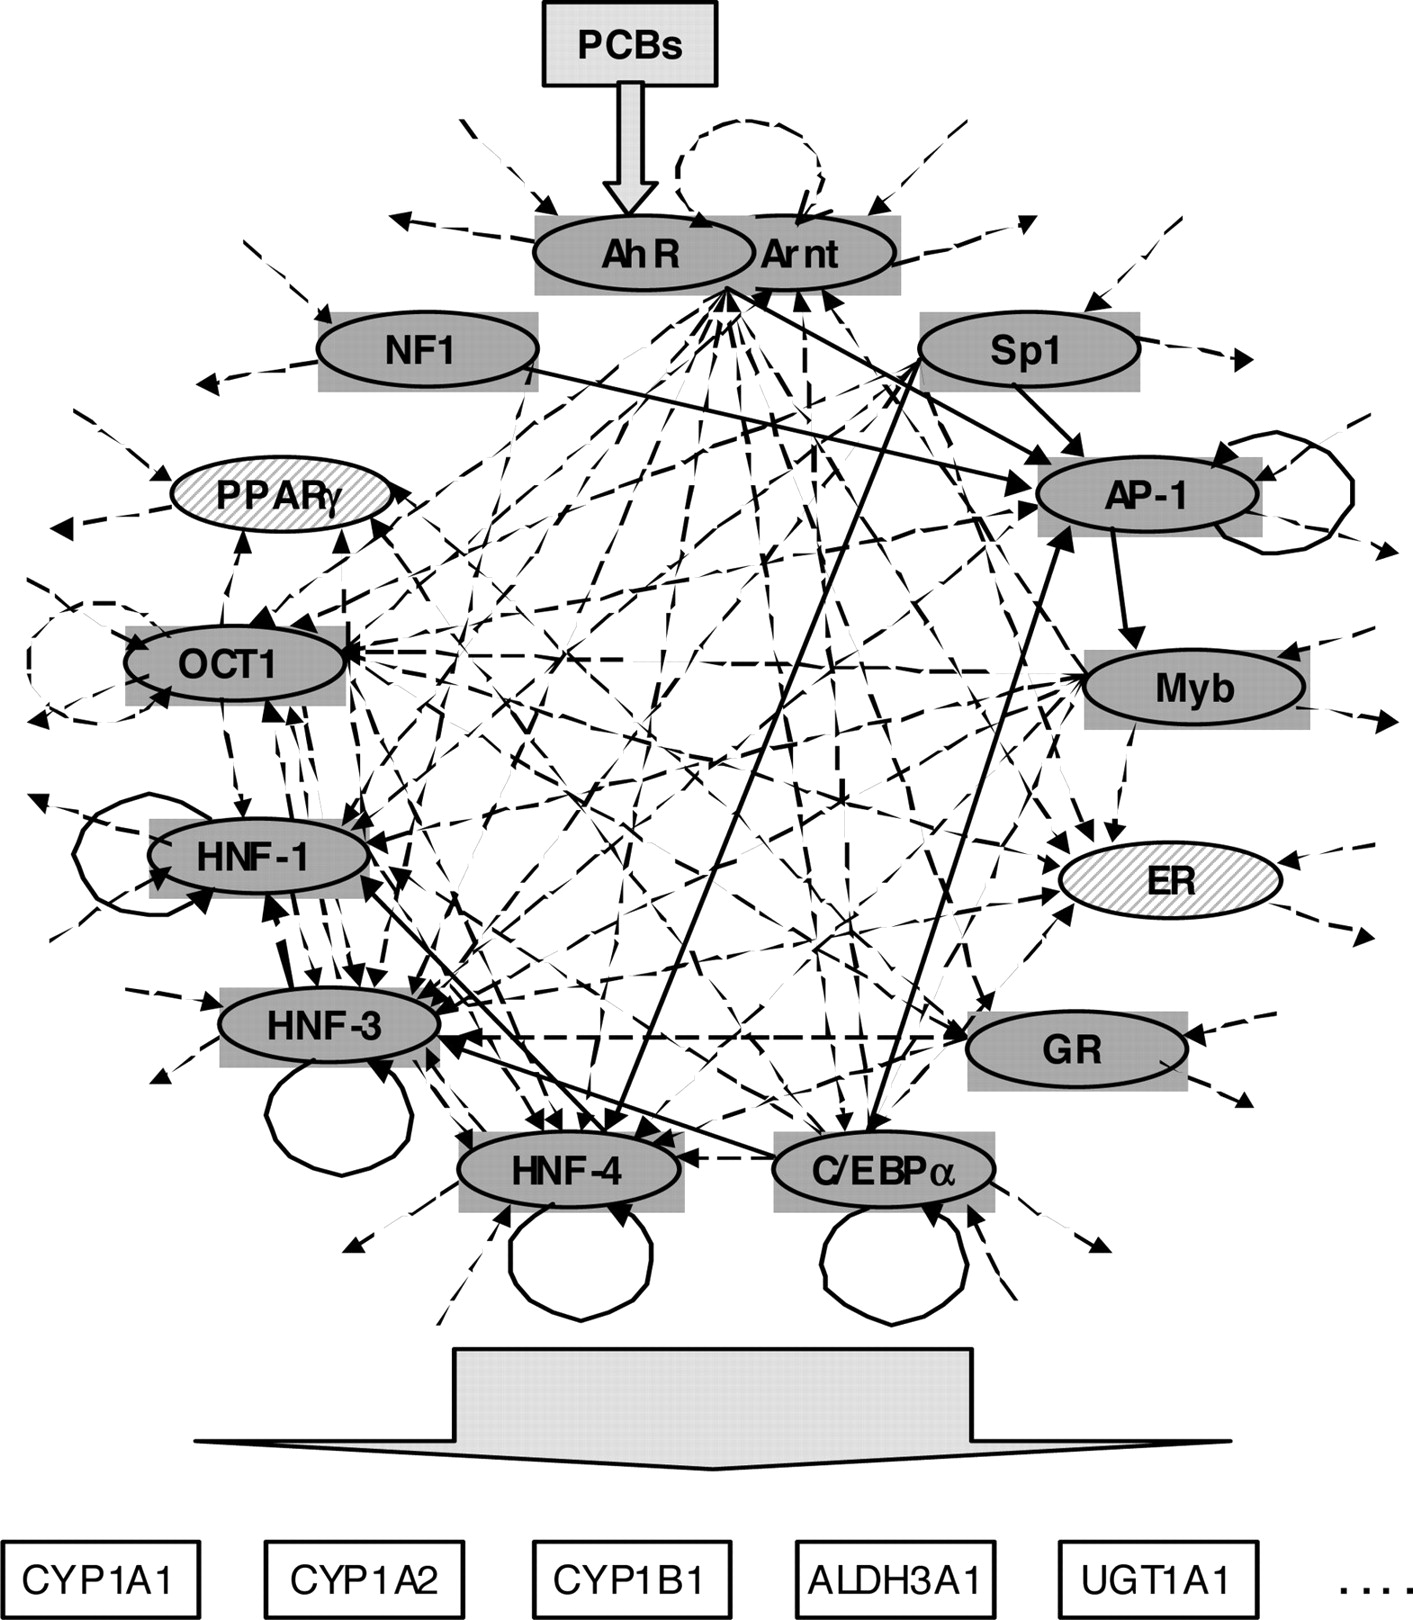 A Novel Computational Approach for the Prediction of